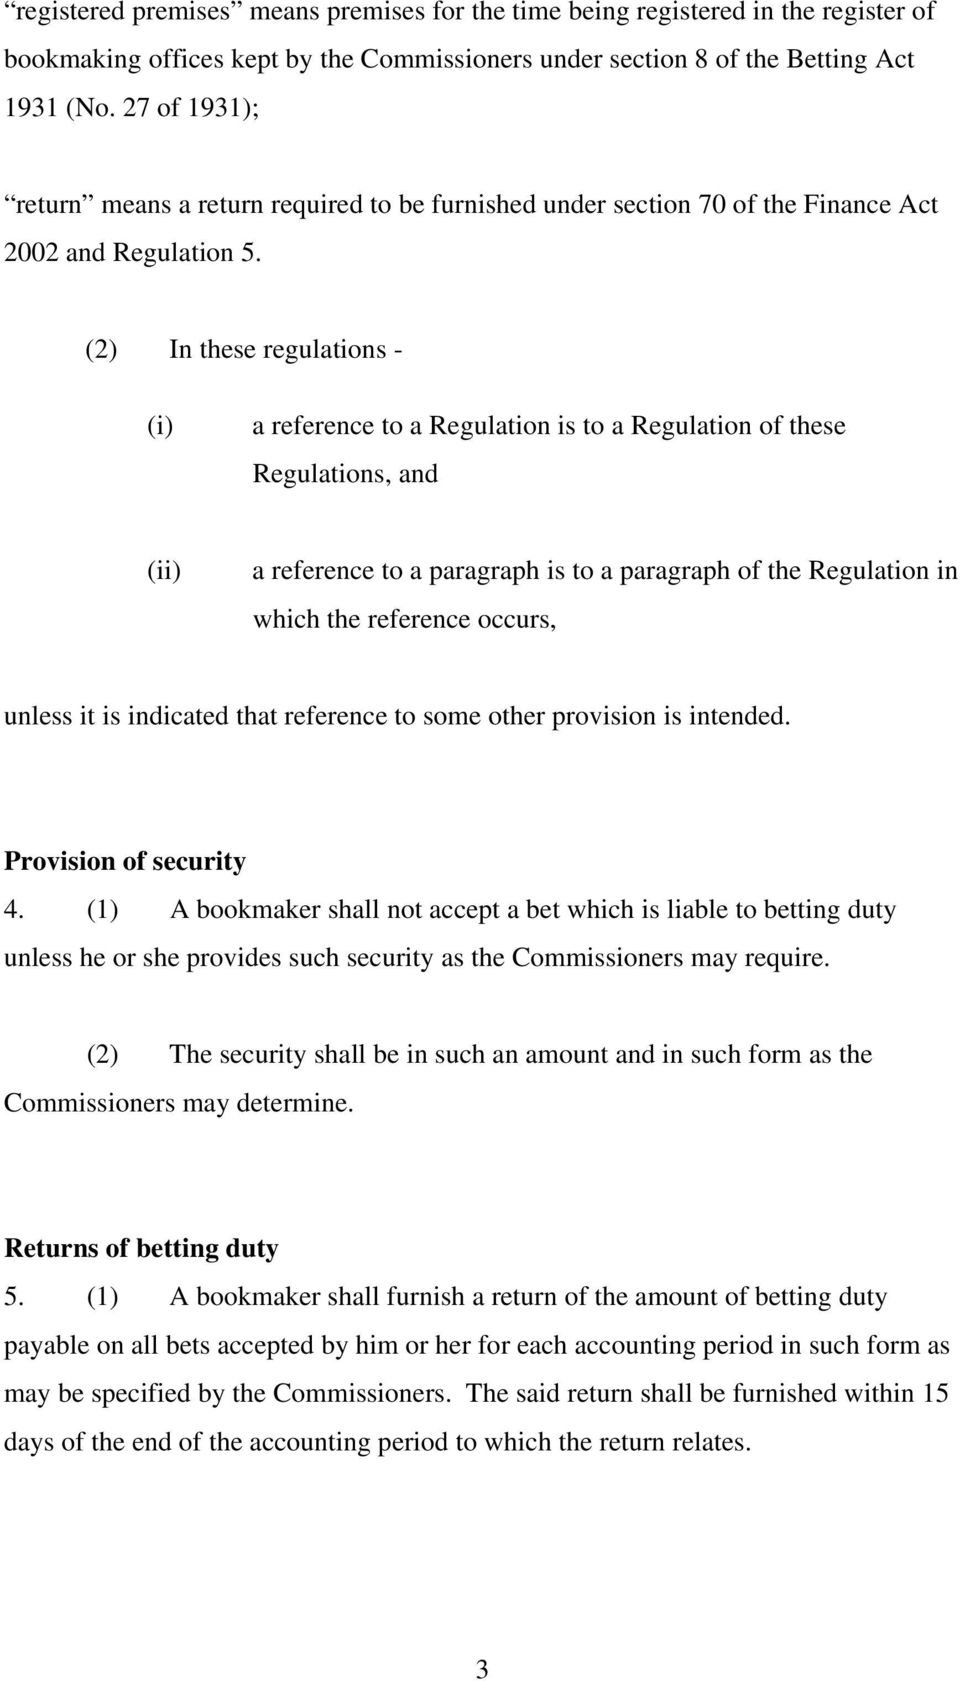 (2) In these regulations - (i) a reference to a Regulation is to a Regulation of these Regulations, and (ii) a reference to a paragraph is to a paragraph of the Regulation in which the reference